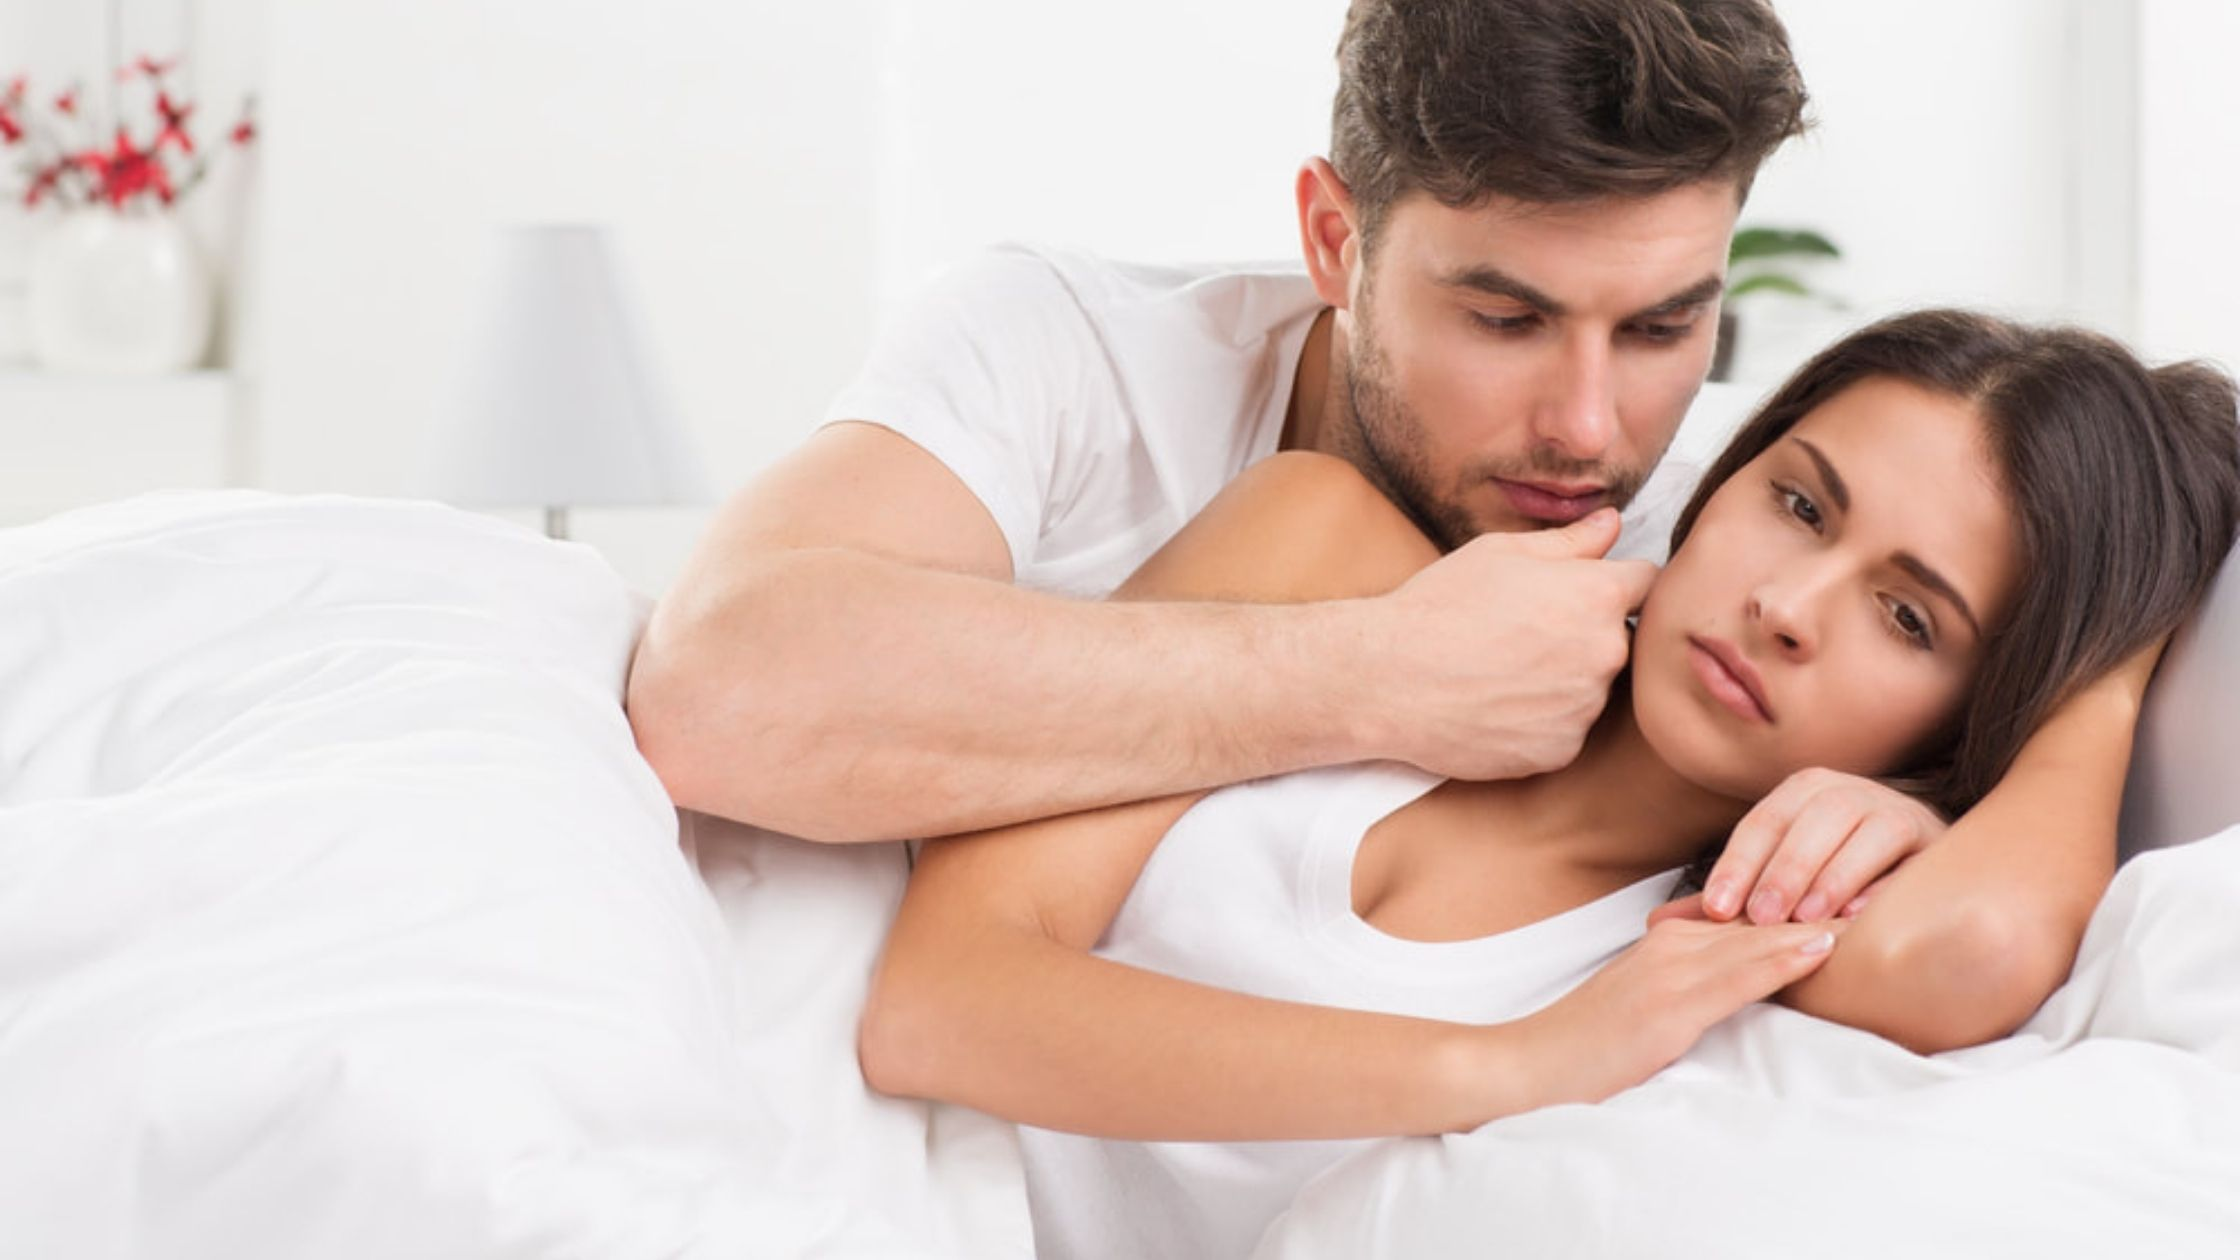 Pain During Sex For Women